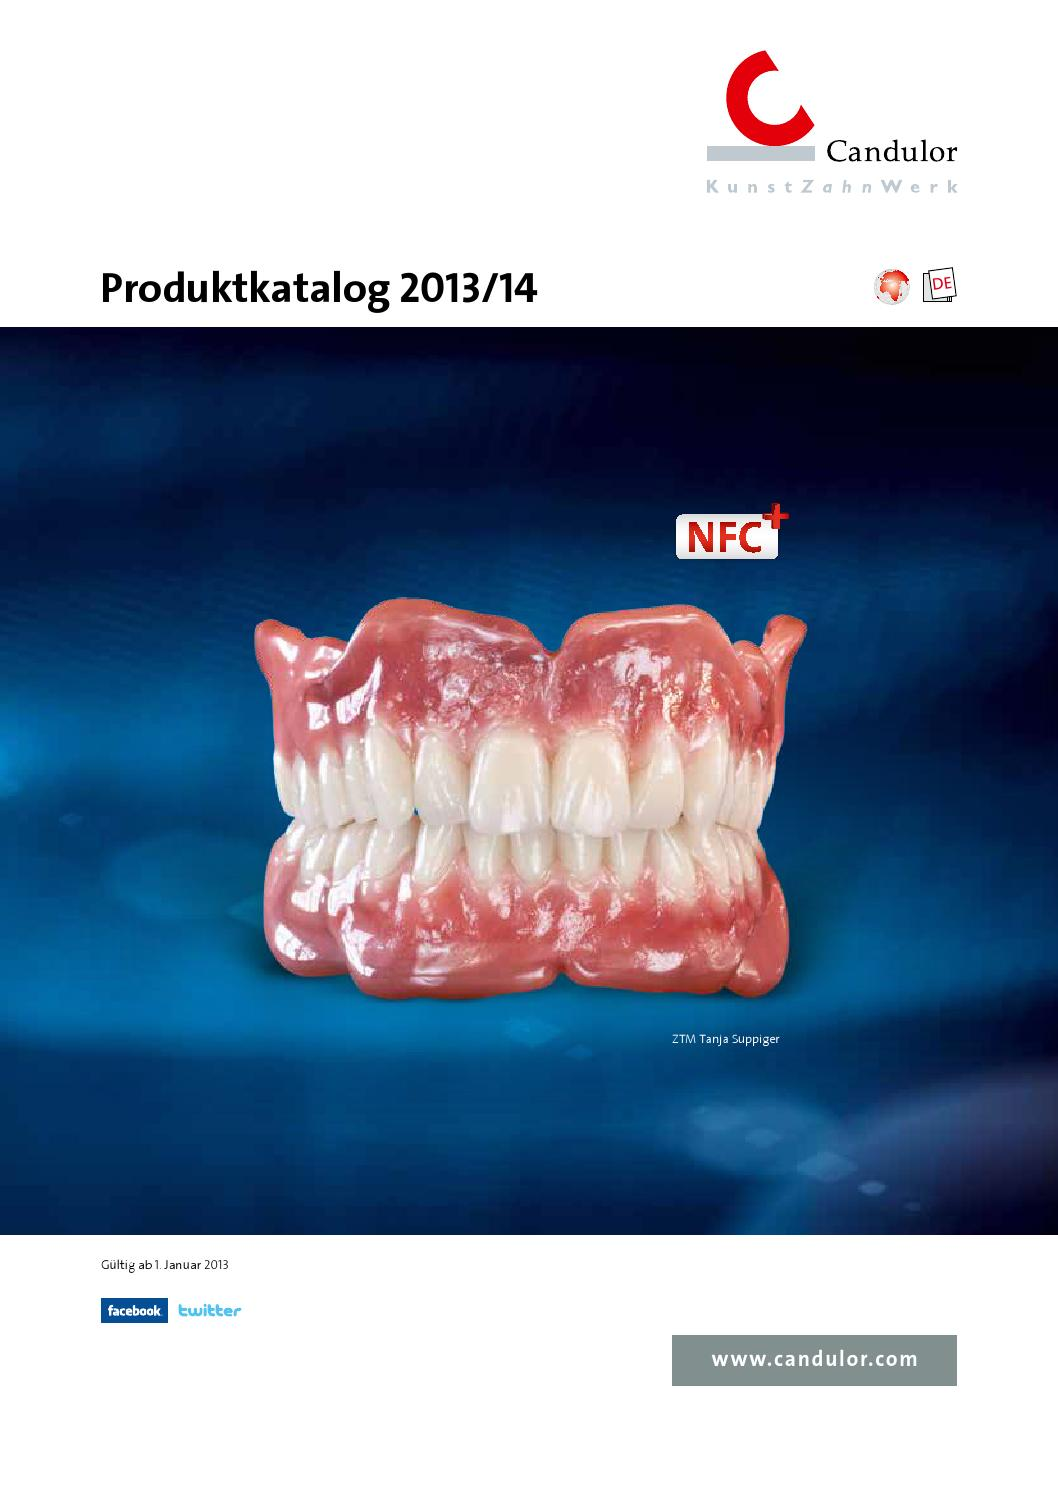 candulor produktkatalog international 2013/14 by candulor - issuu, Hause ideen